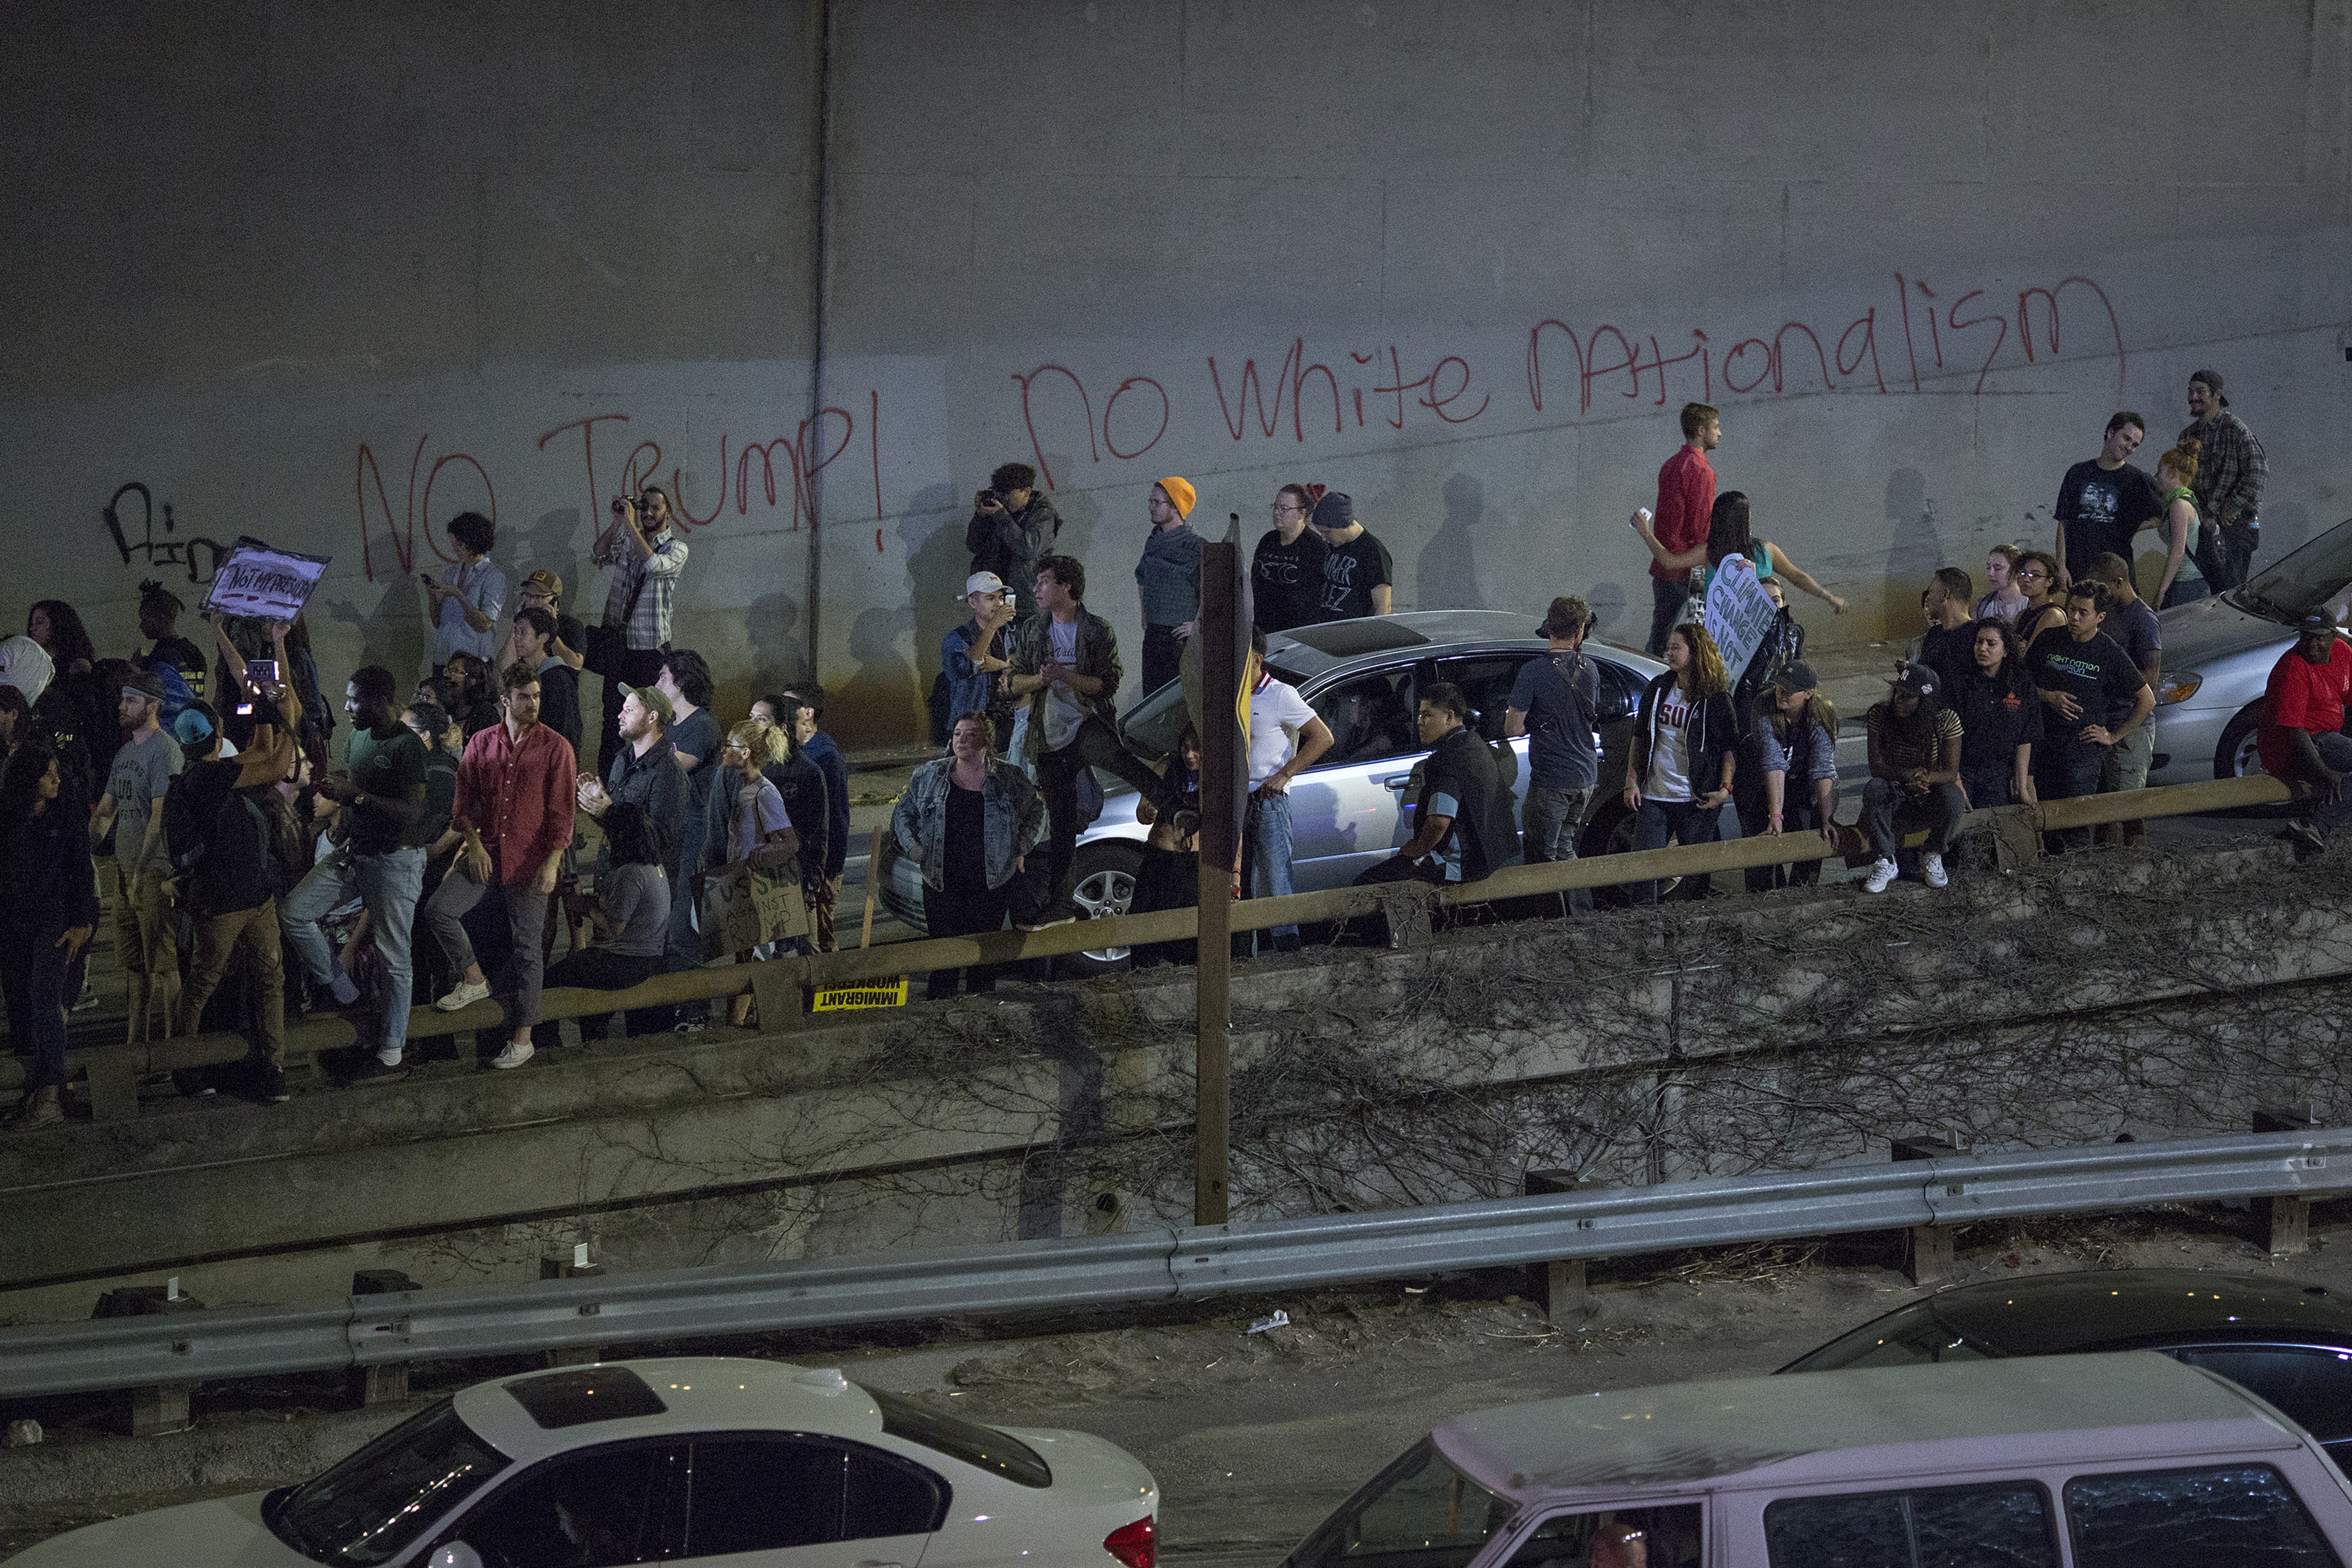 Protesters on an onramp watch as police advance toward them in Los Angeles, California.